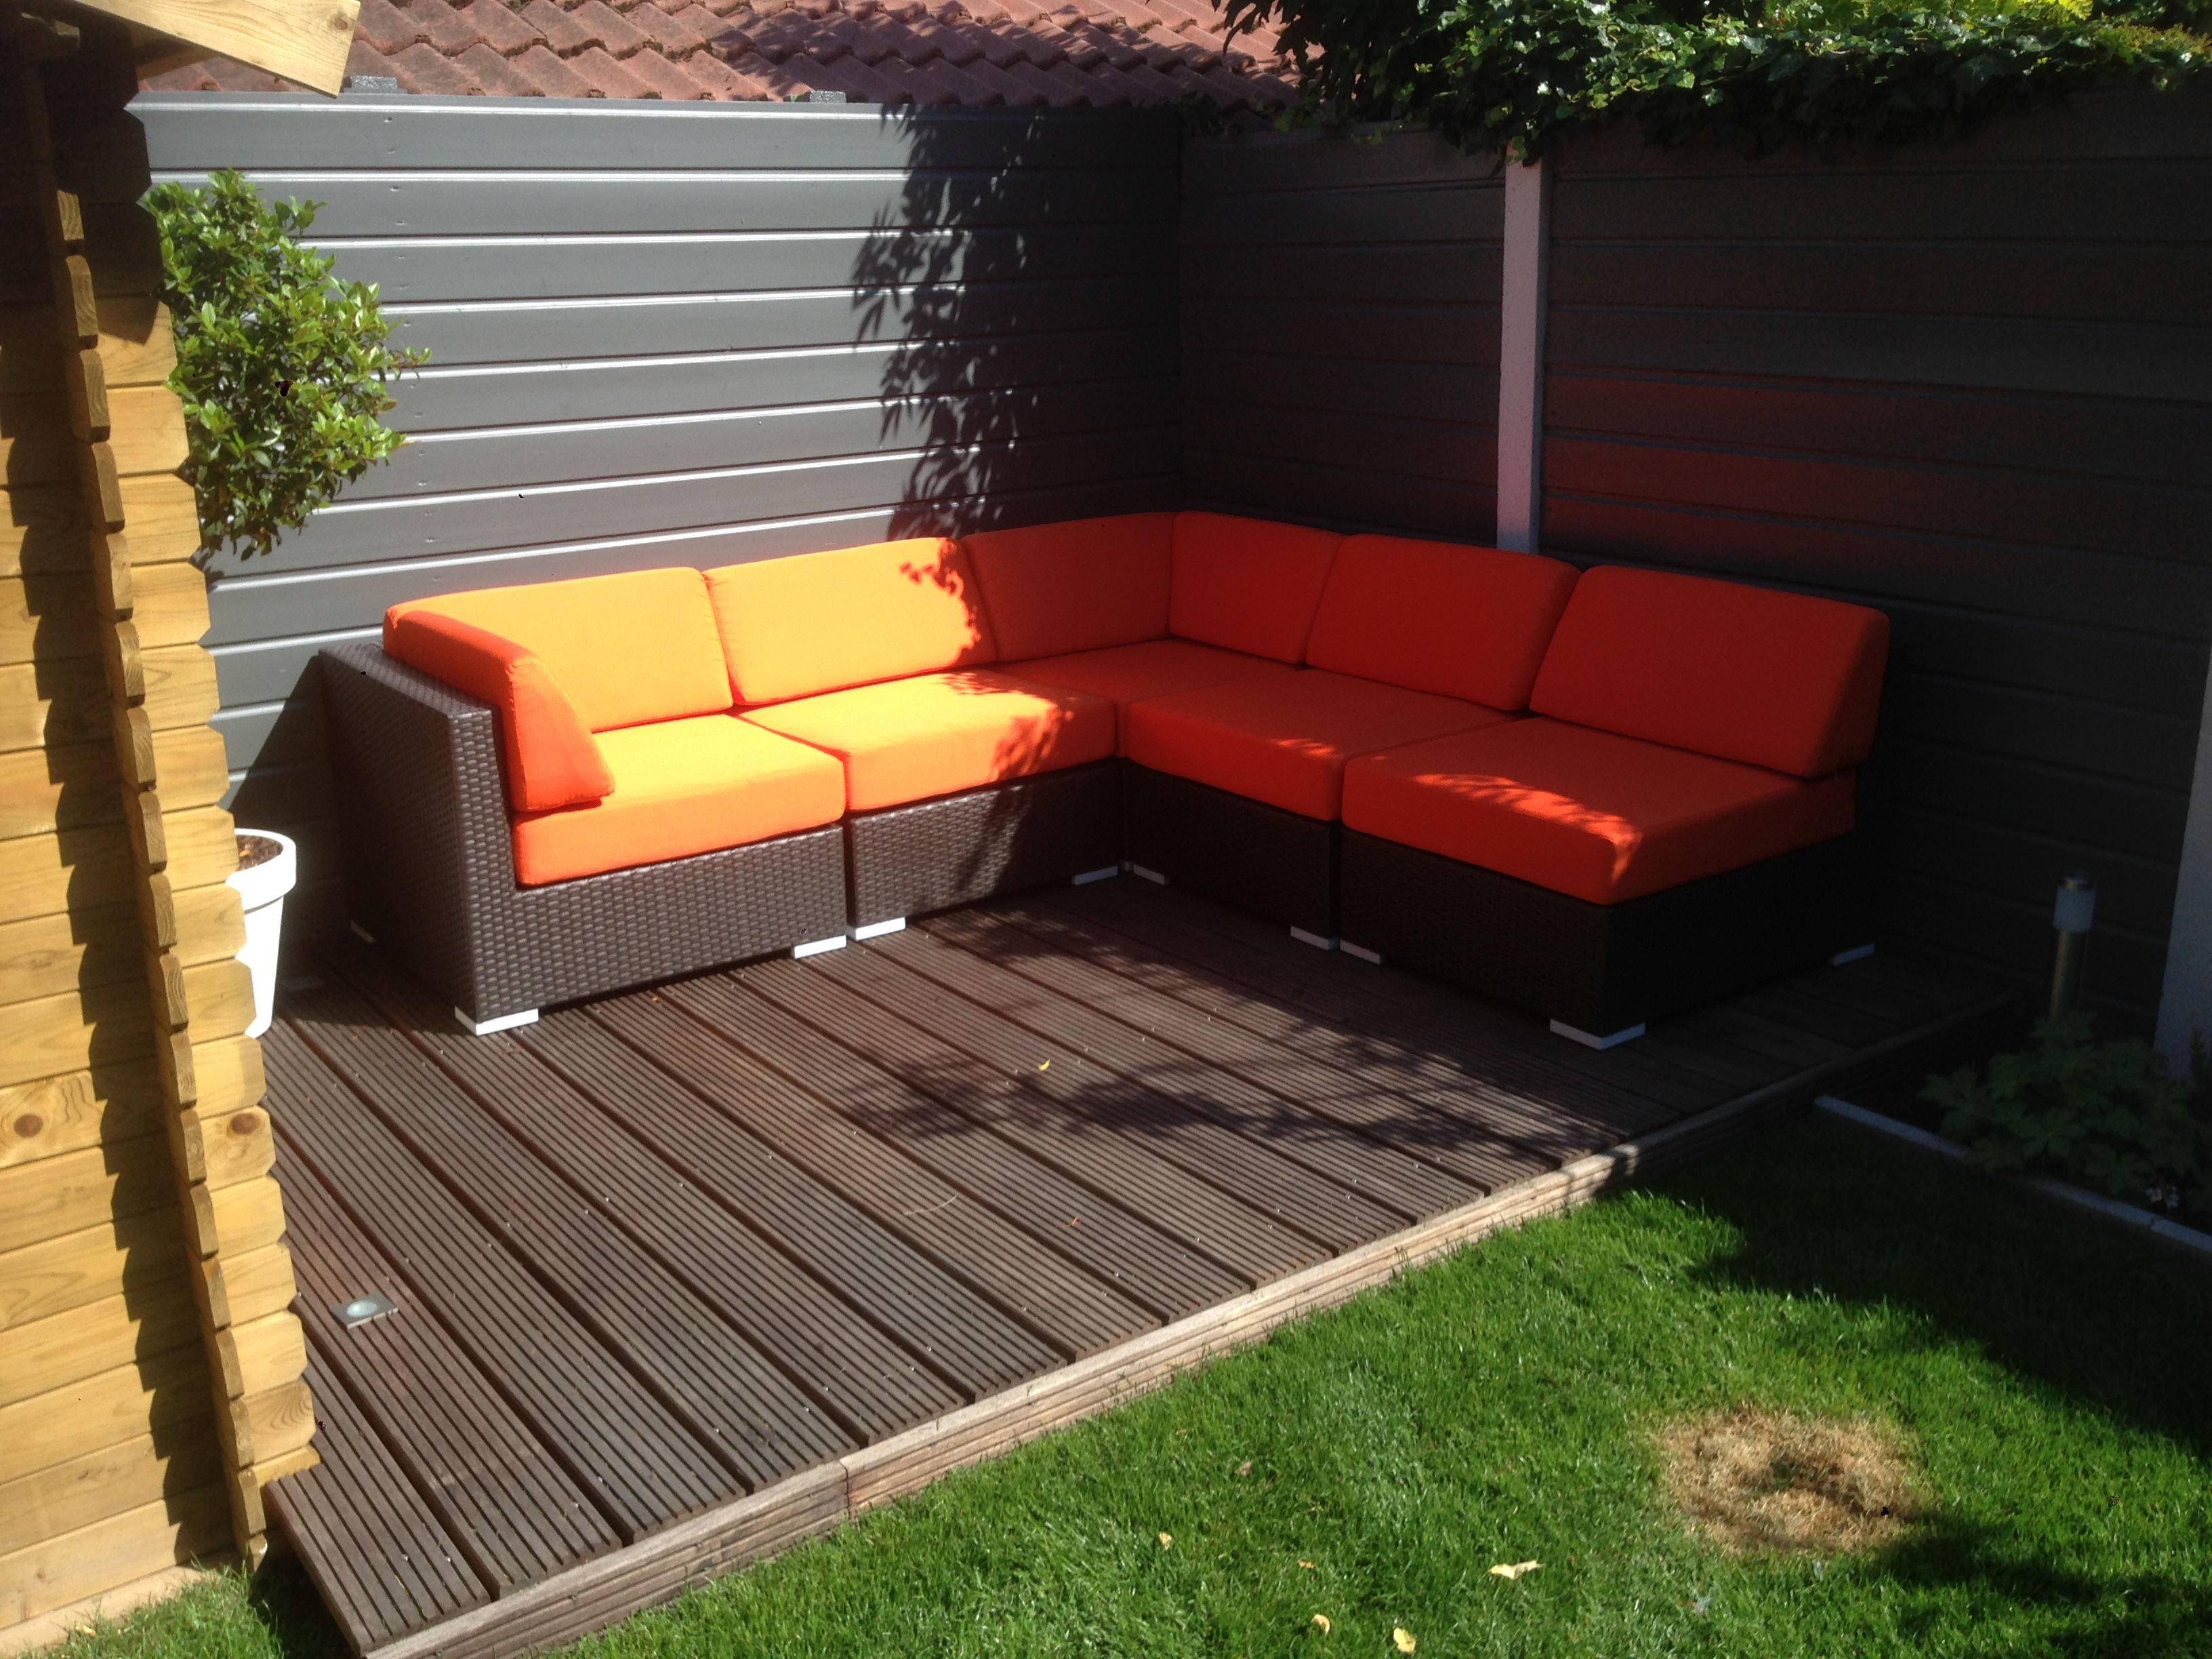 Lounge serie marseille   outdoorinstyle.nl